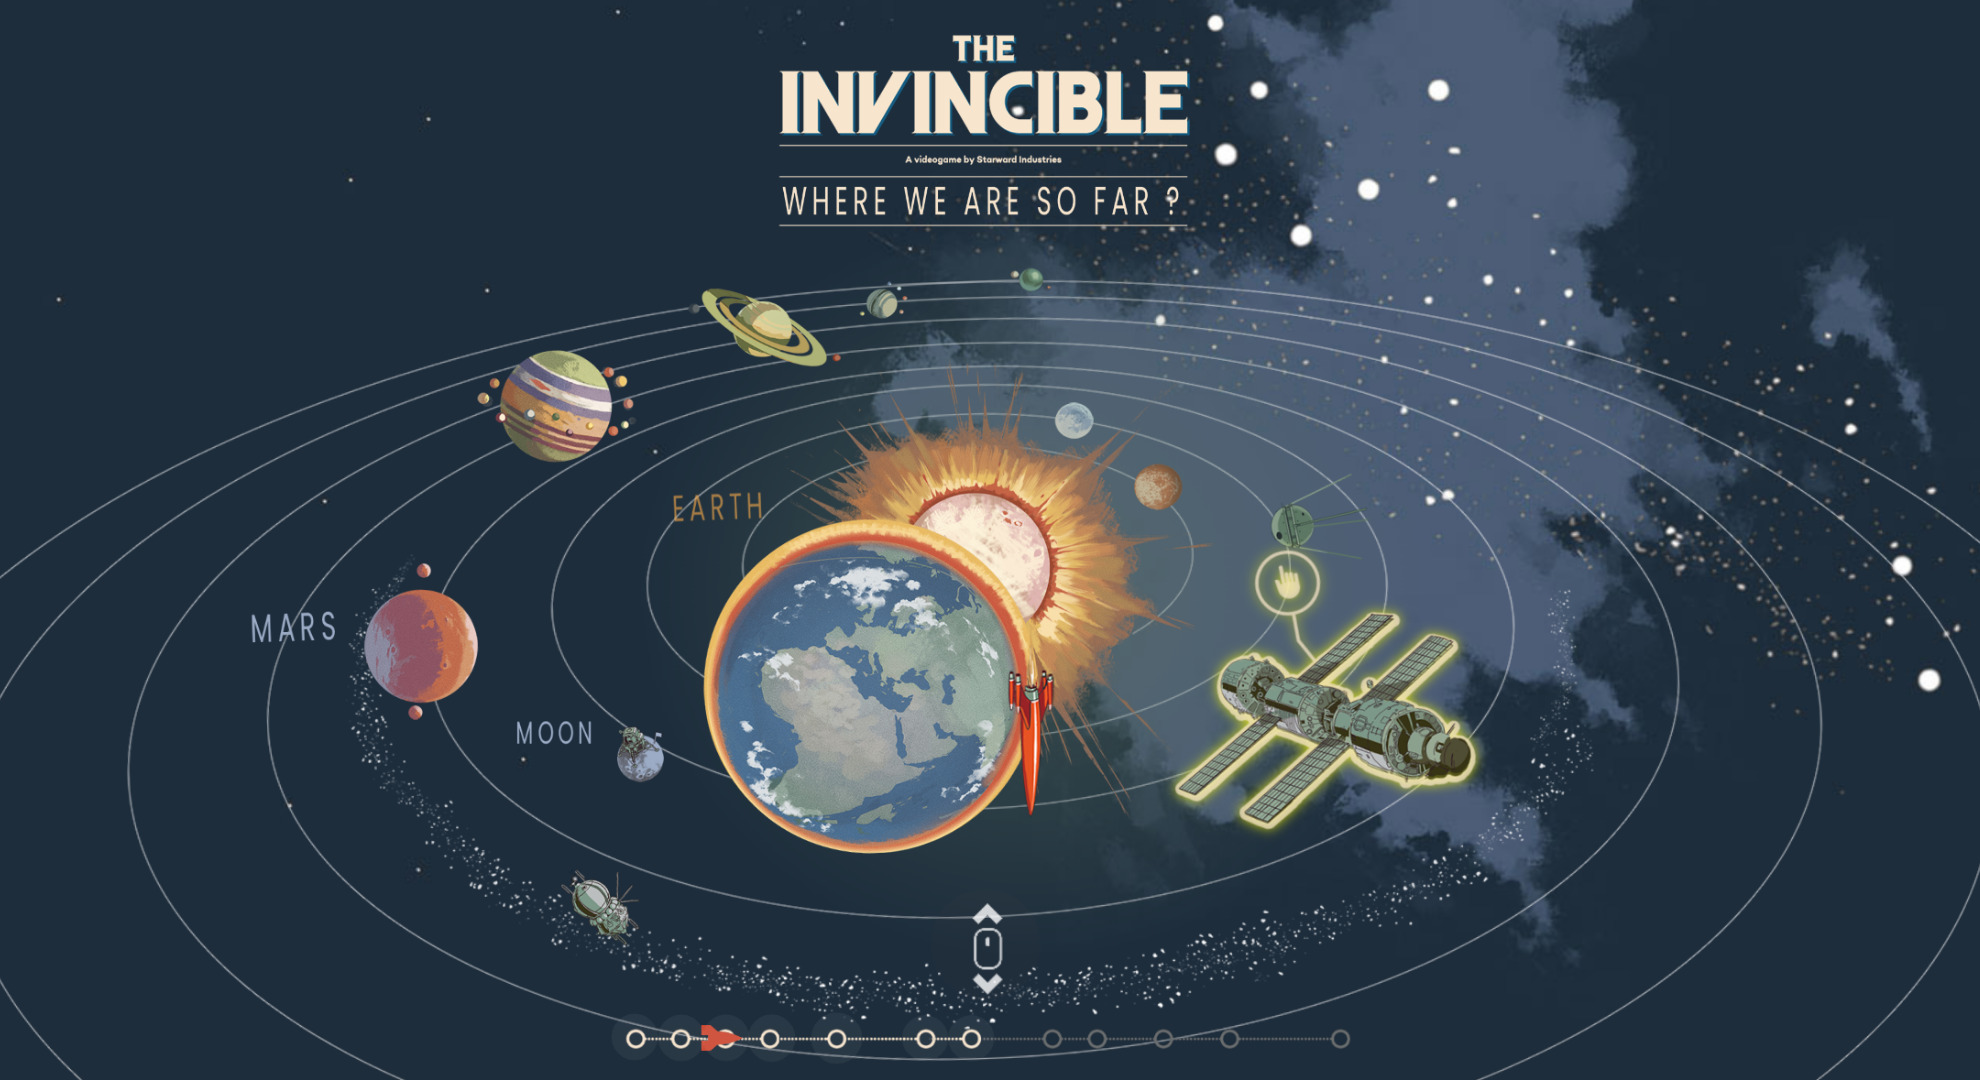 The Invincible space